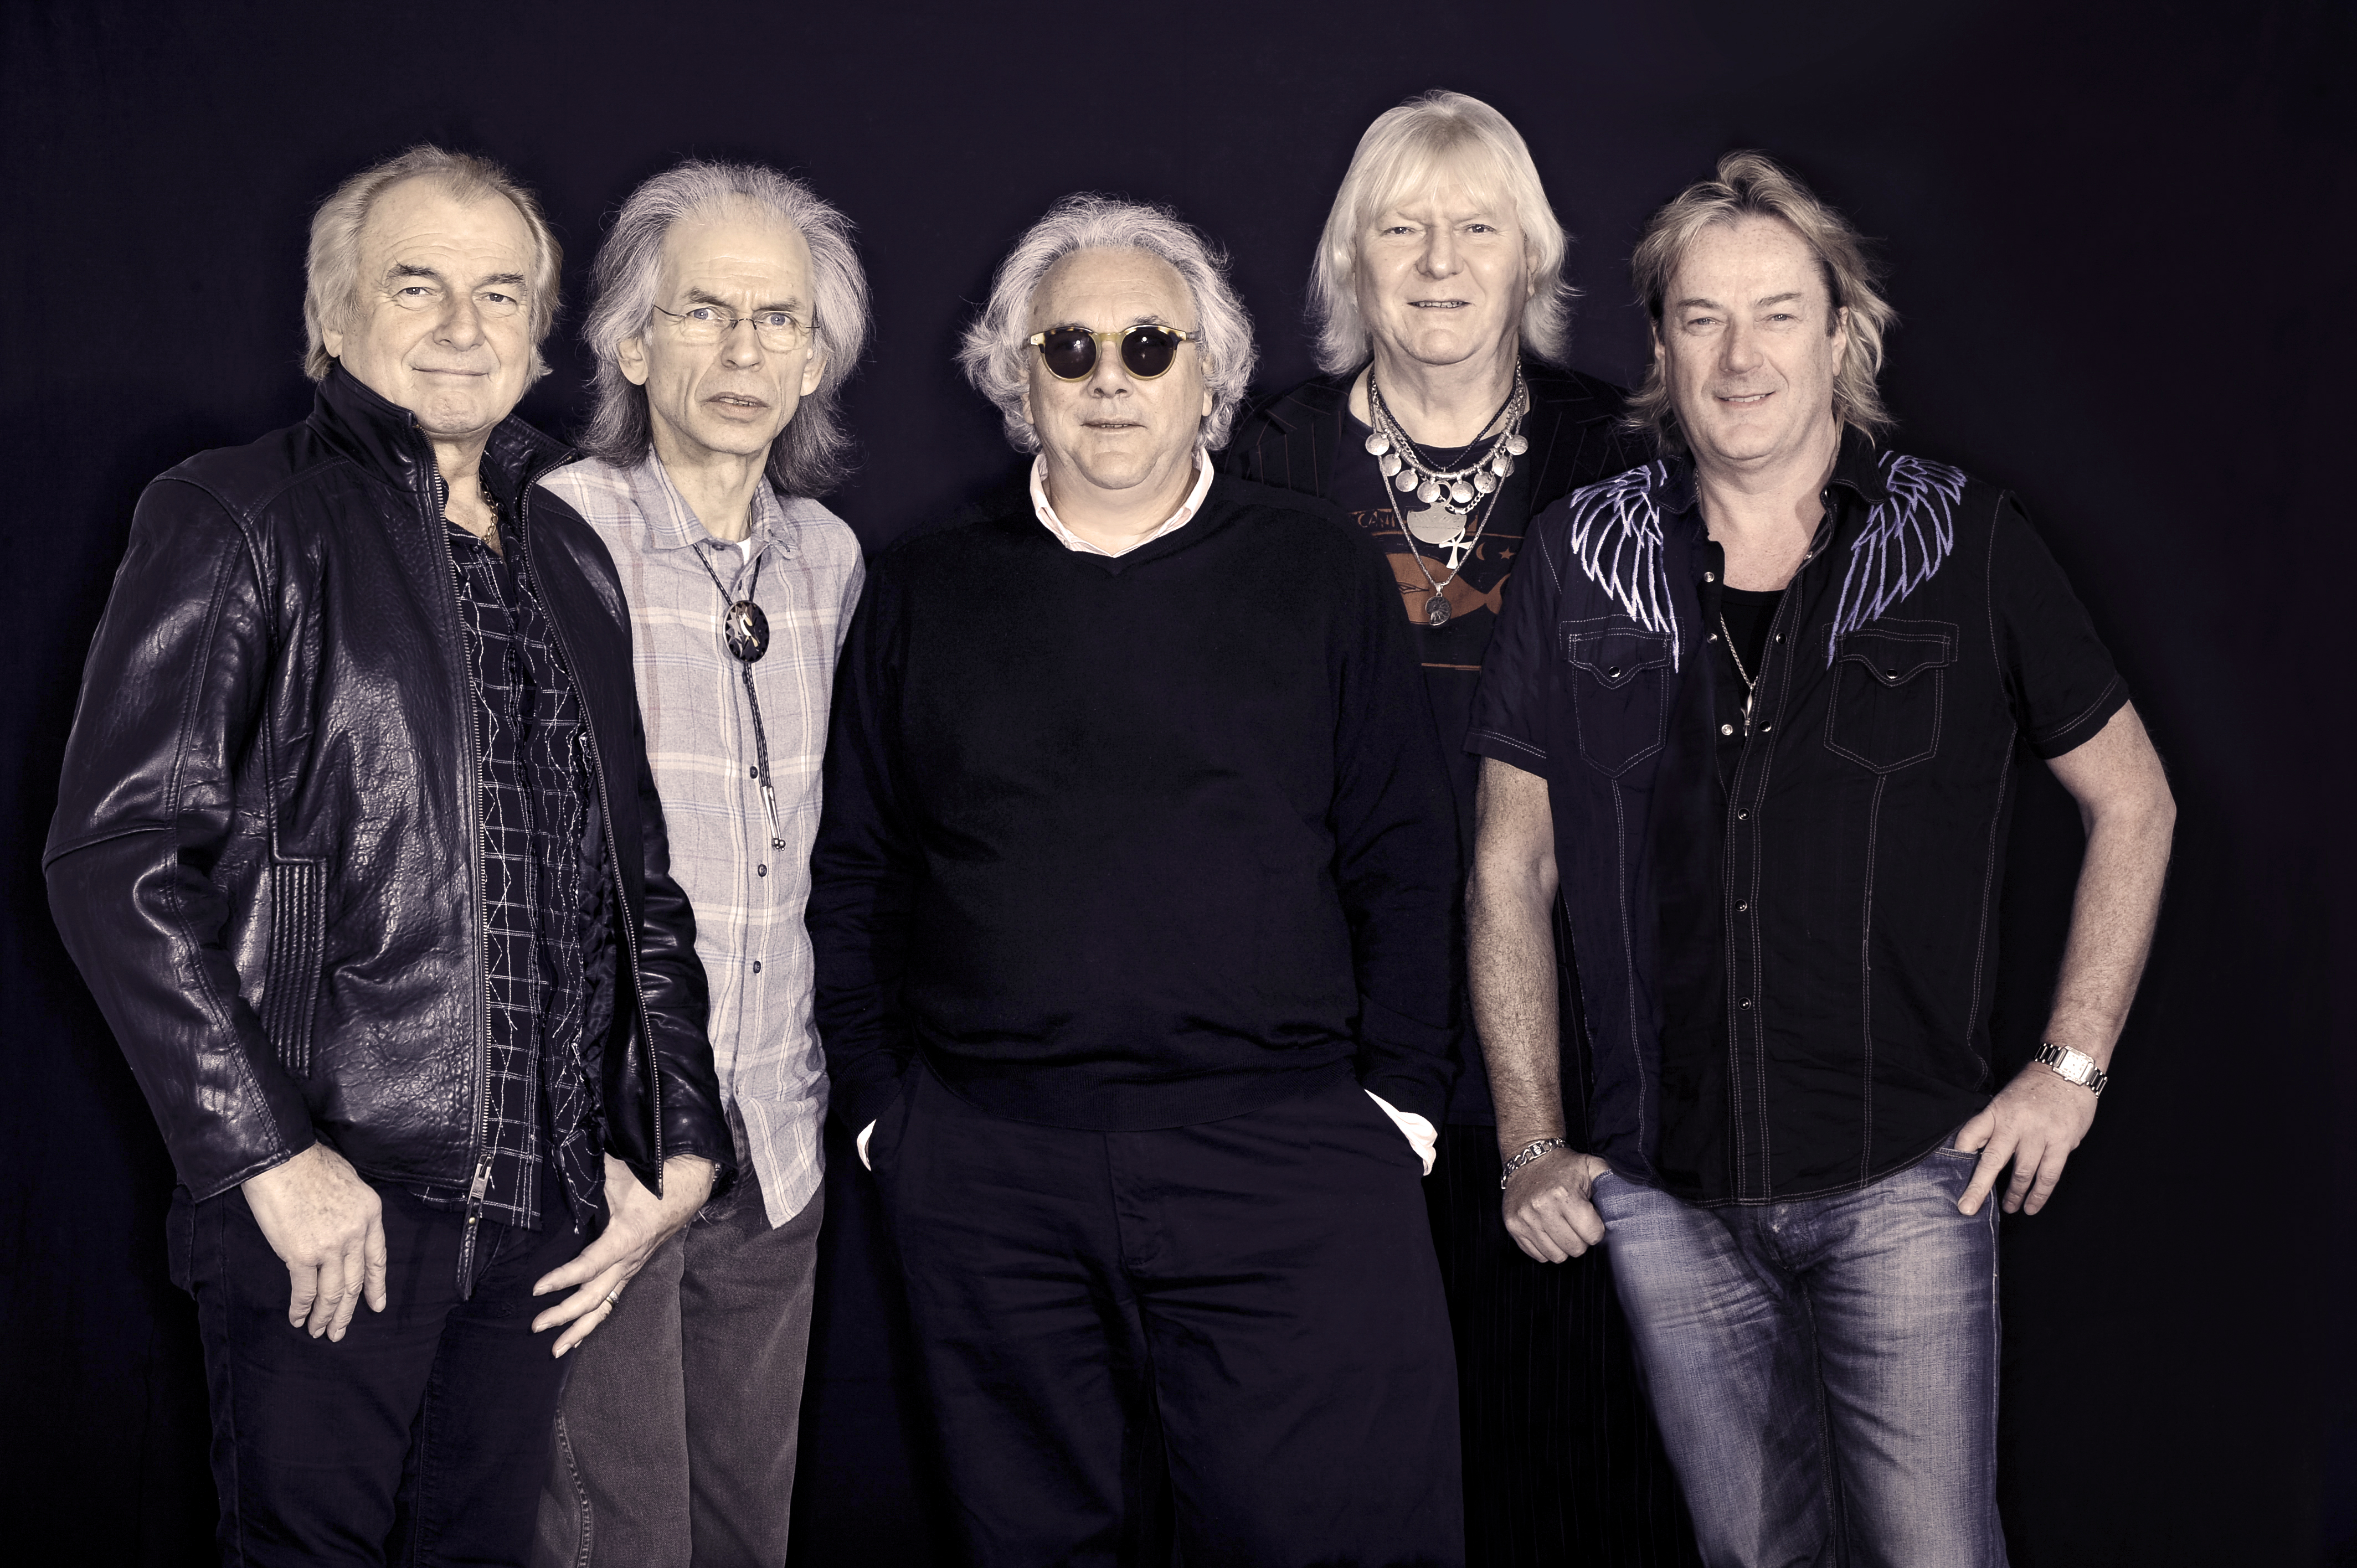 YES photo by Rob Shanahan.